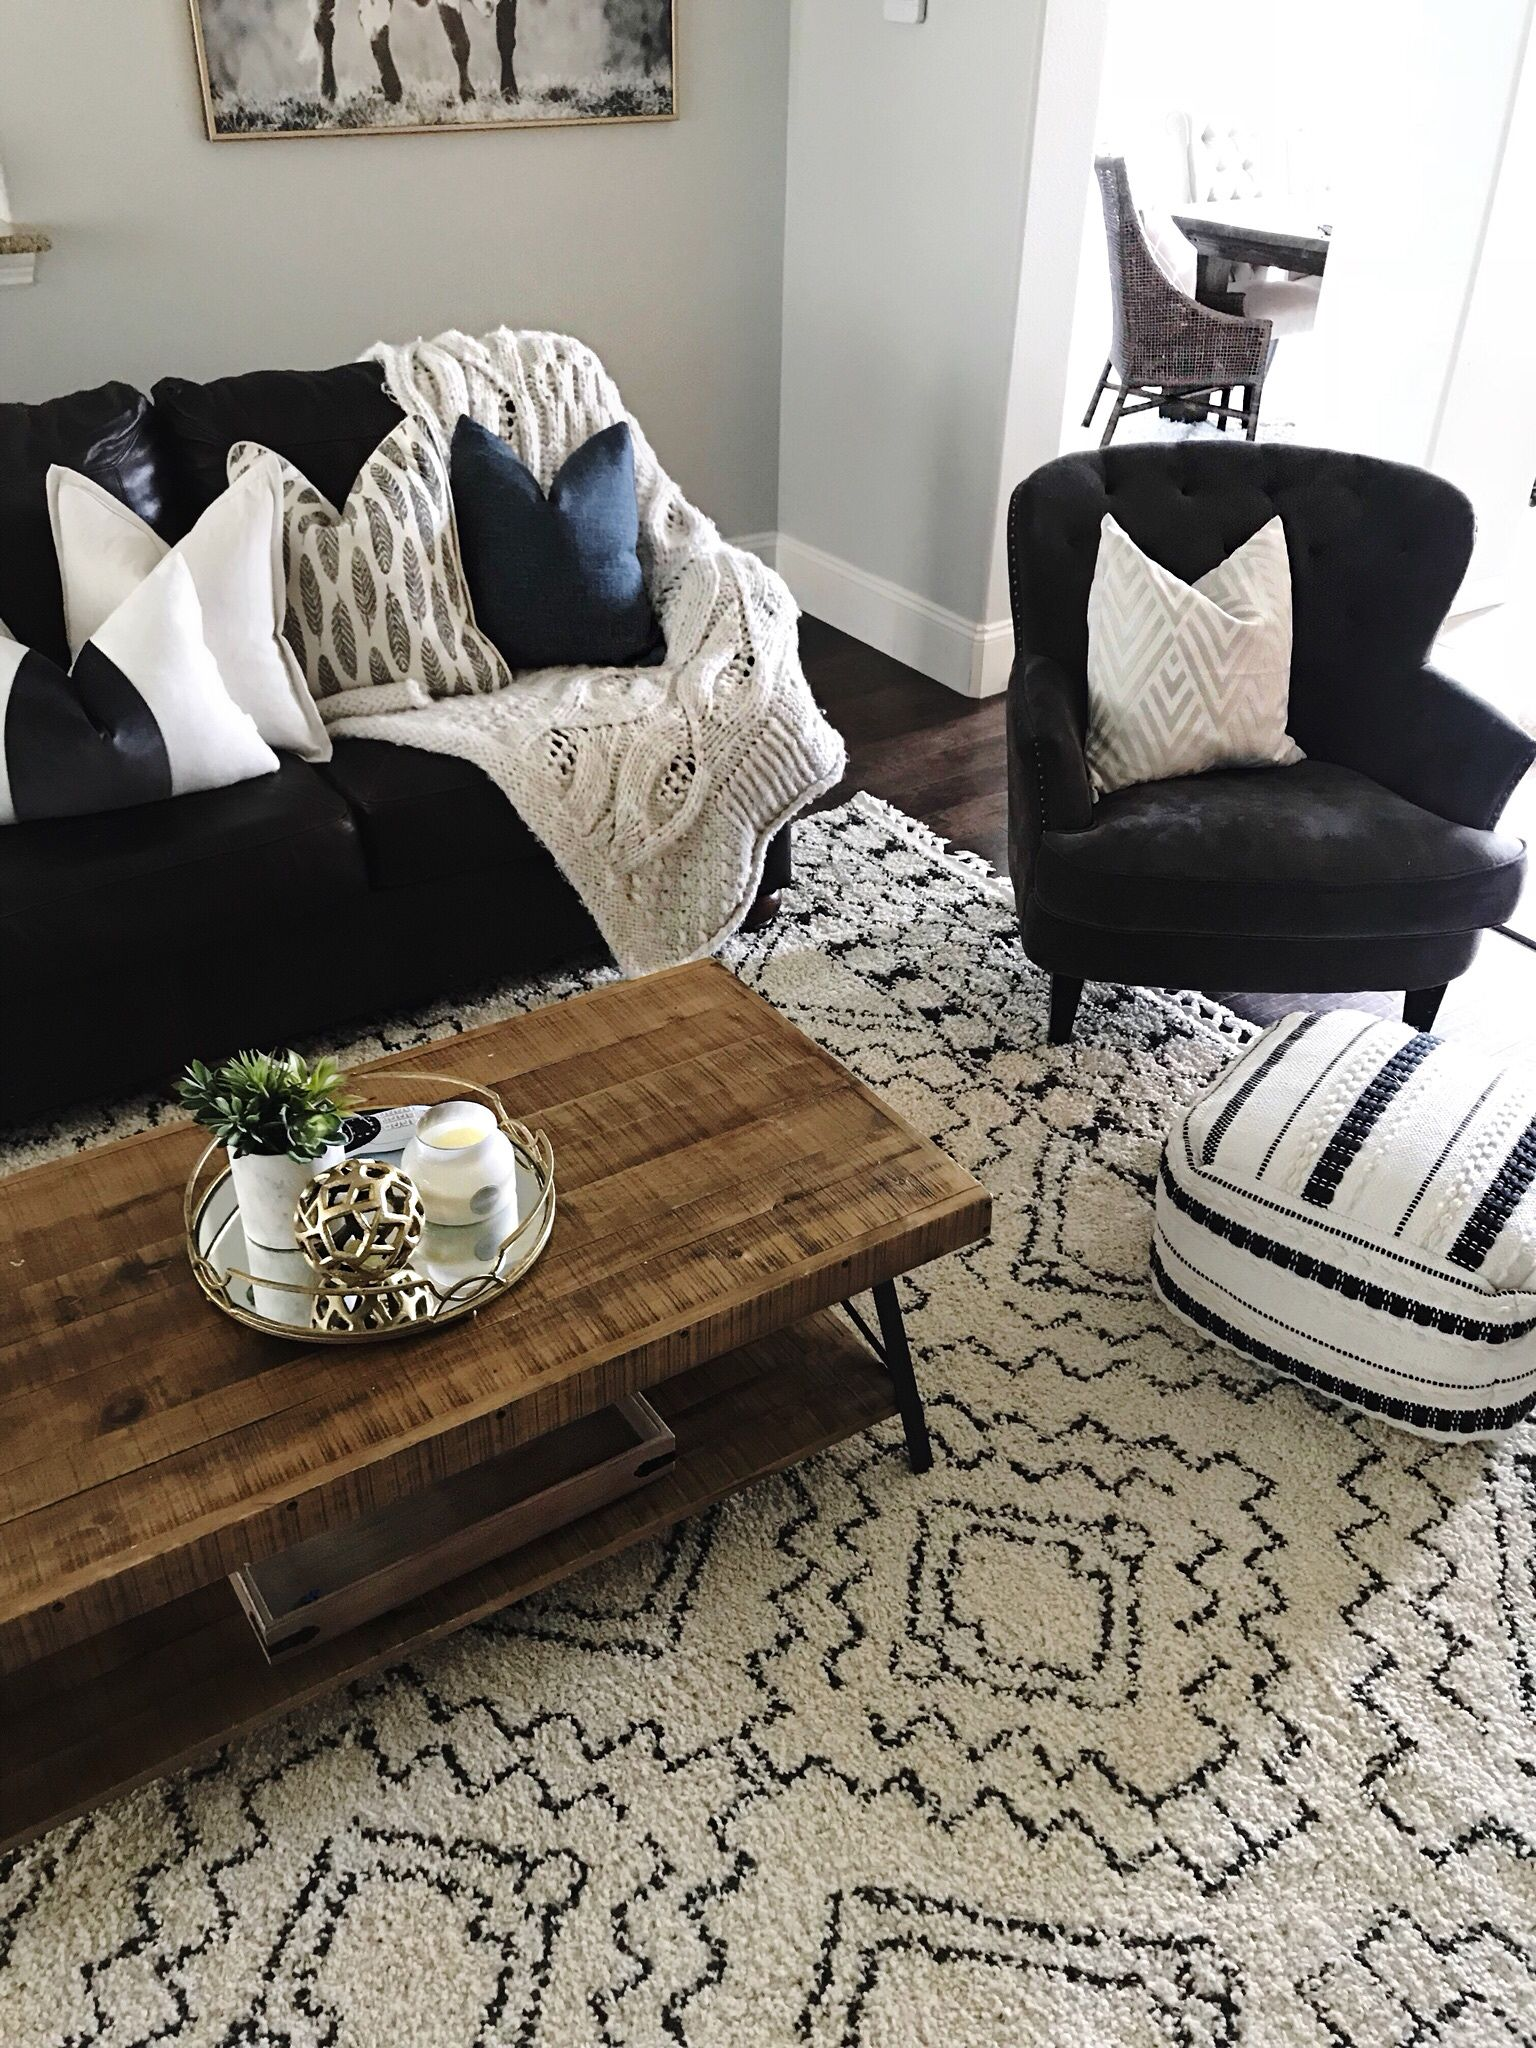 Home Depot Living Room Rugs Chaise Lounge Chairs For My New Rug The Sister Studio Pinterest Furniture Online Art Cheap In